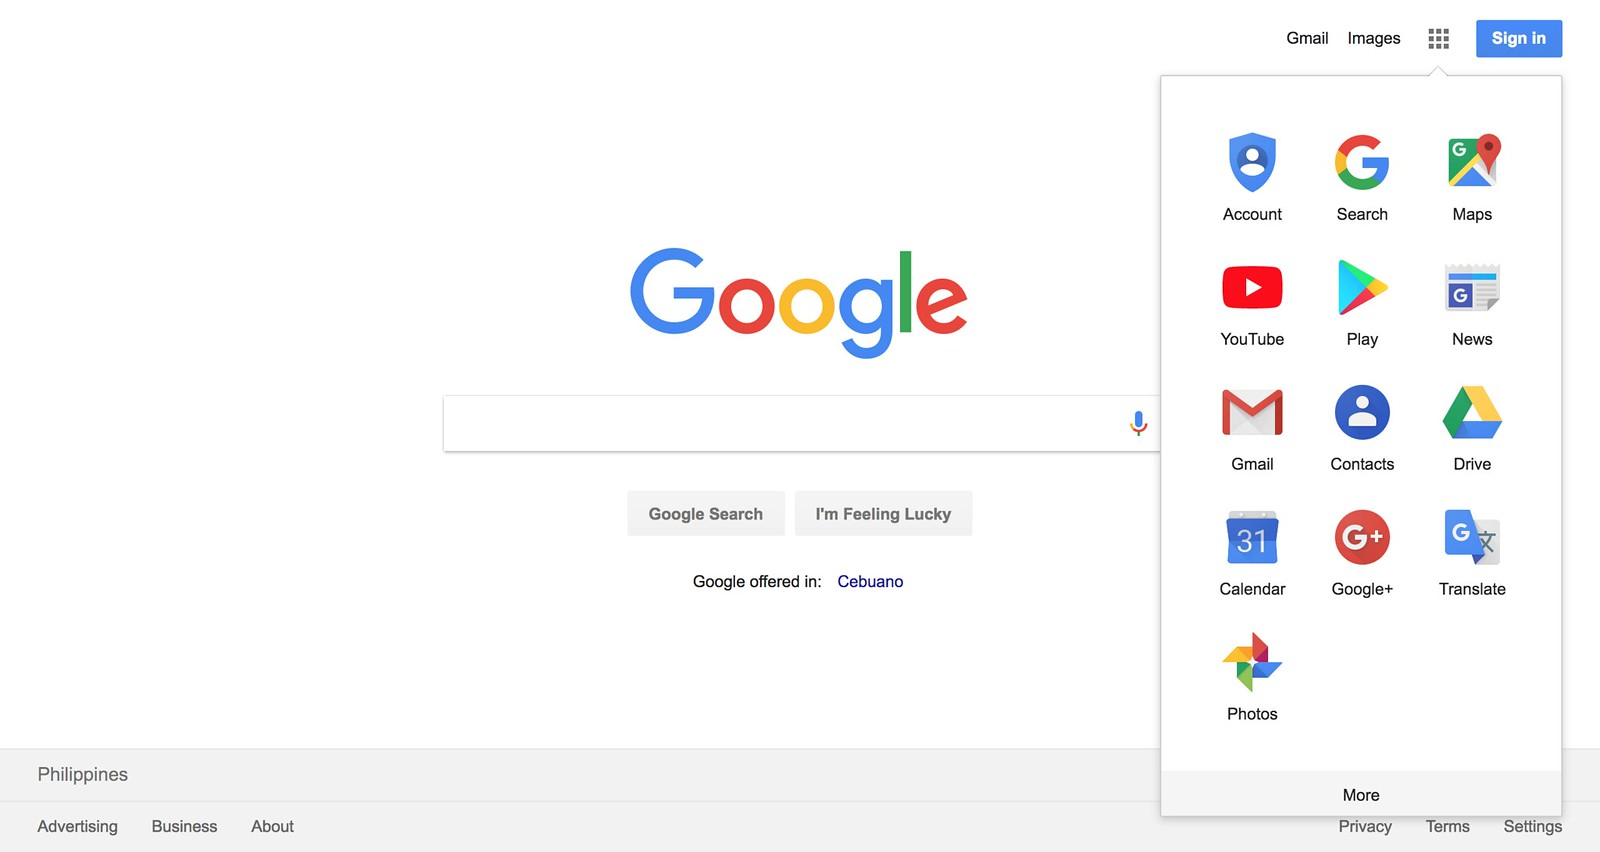 Google Homepage - Google Apps Menu